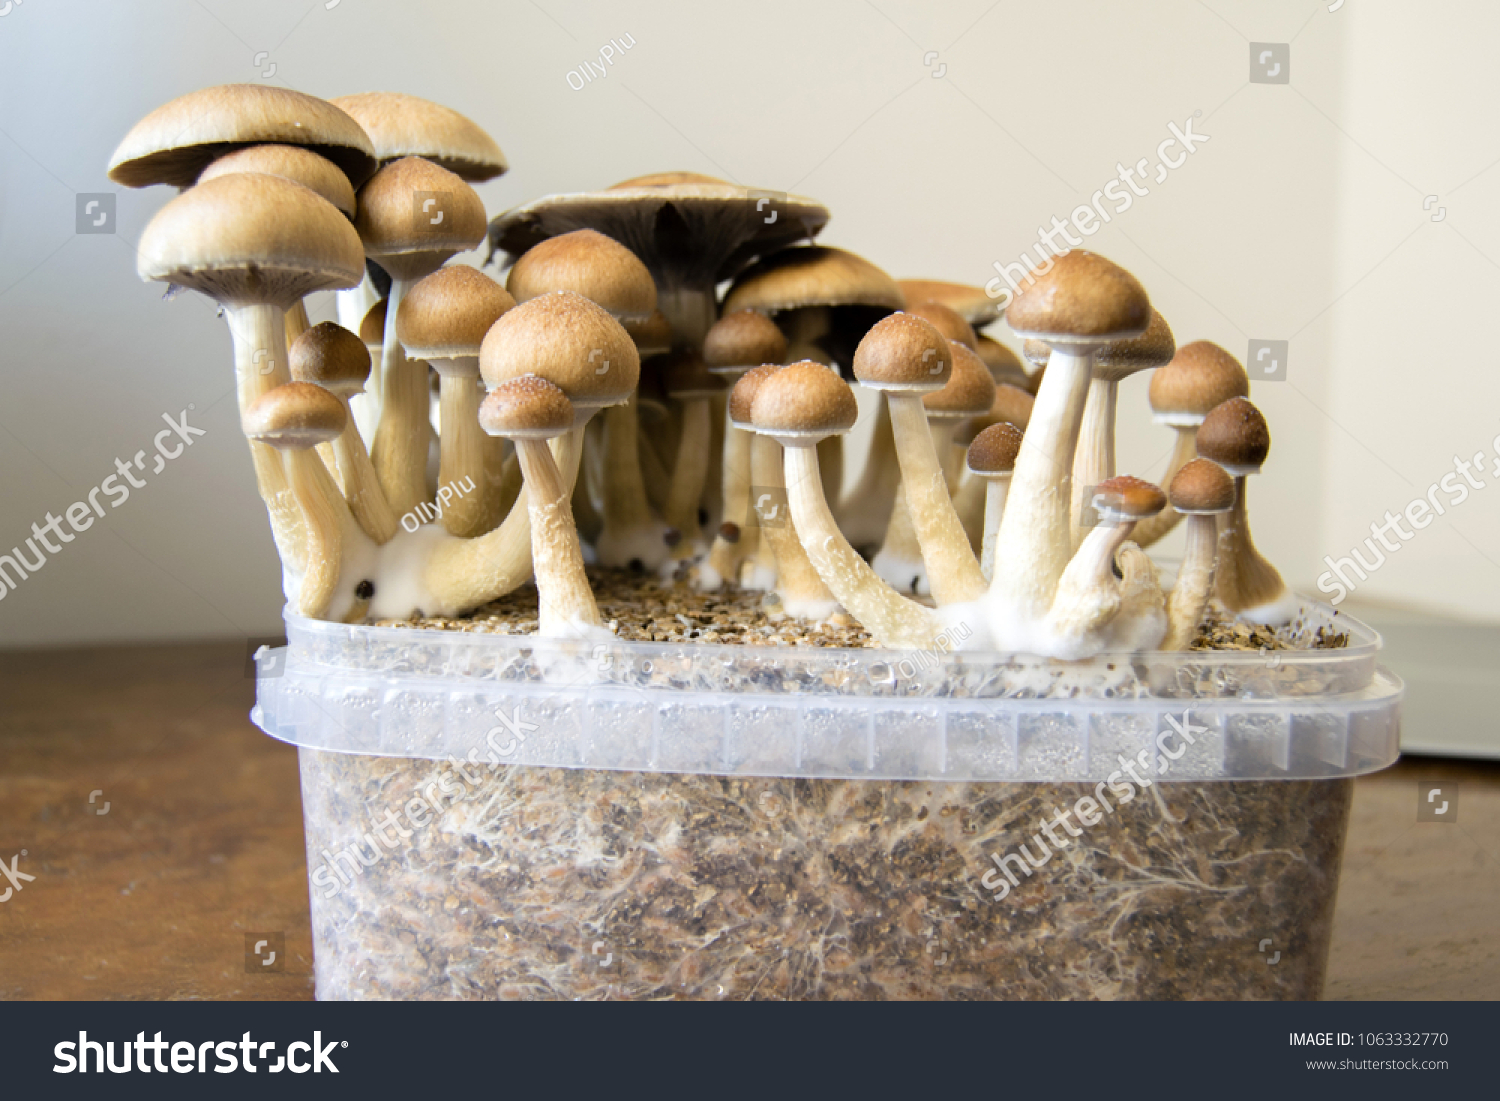 Psychedelic Magic Mushrooms Growing Home Cultivation Stock